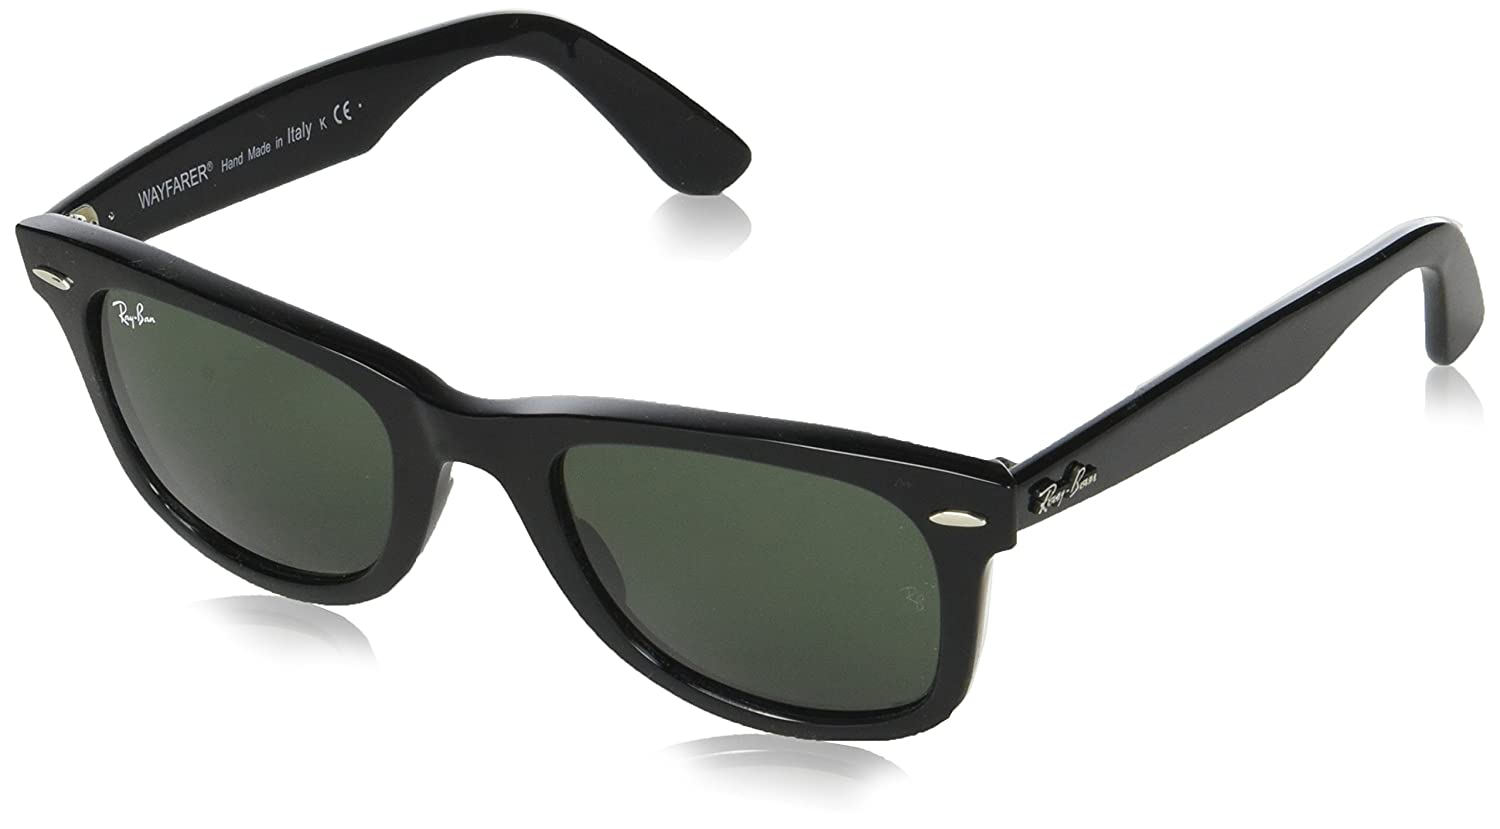 86a3011e970 Amazon.com  Ray-Ban WAYFARER - BLACK Frame CRYSTAL GREEN Lenses 50mm  Non-Polarized  Ray-Ban  Shoes